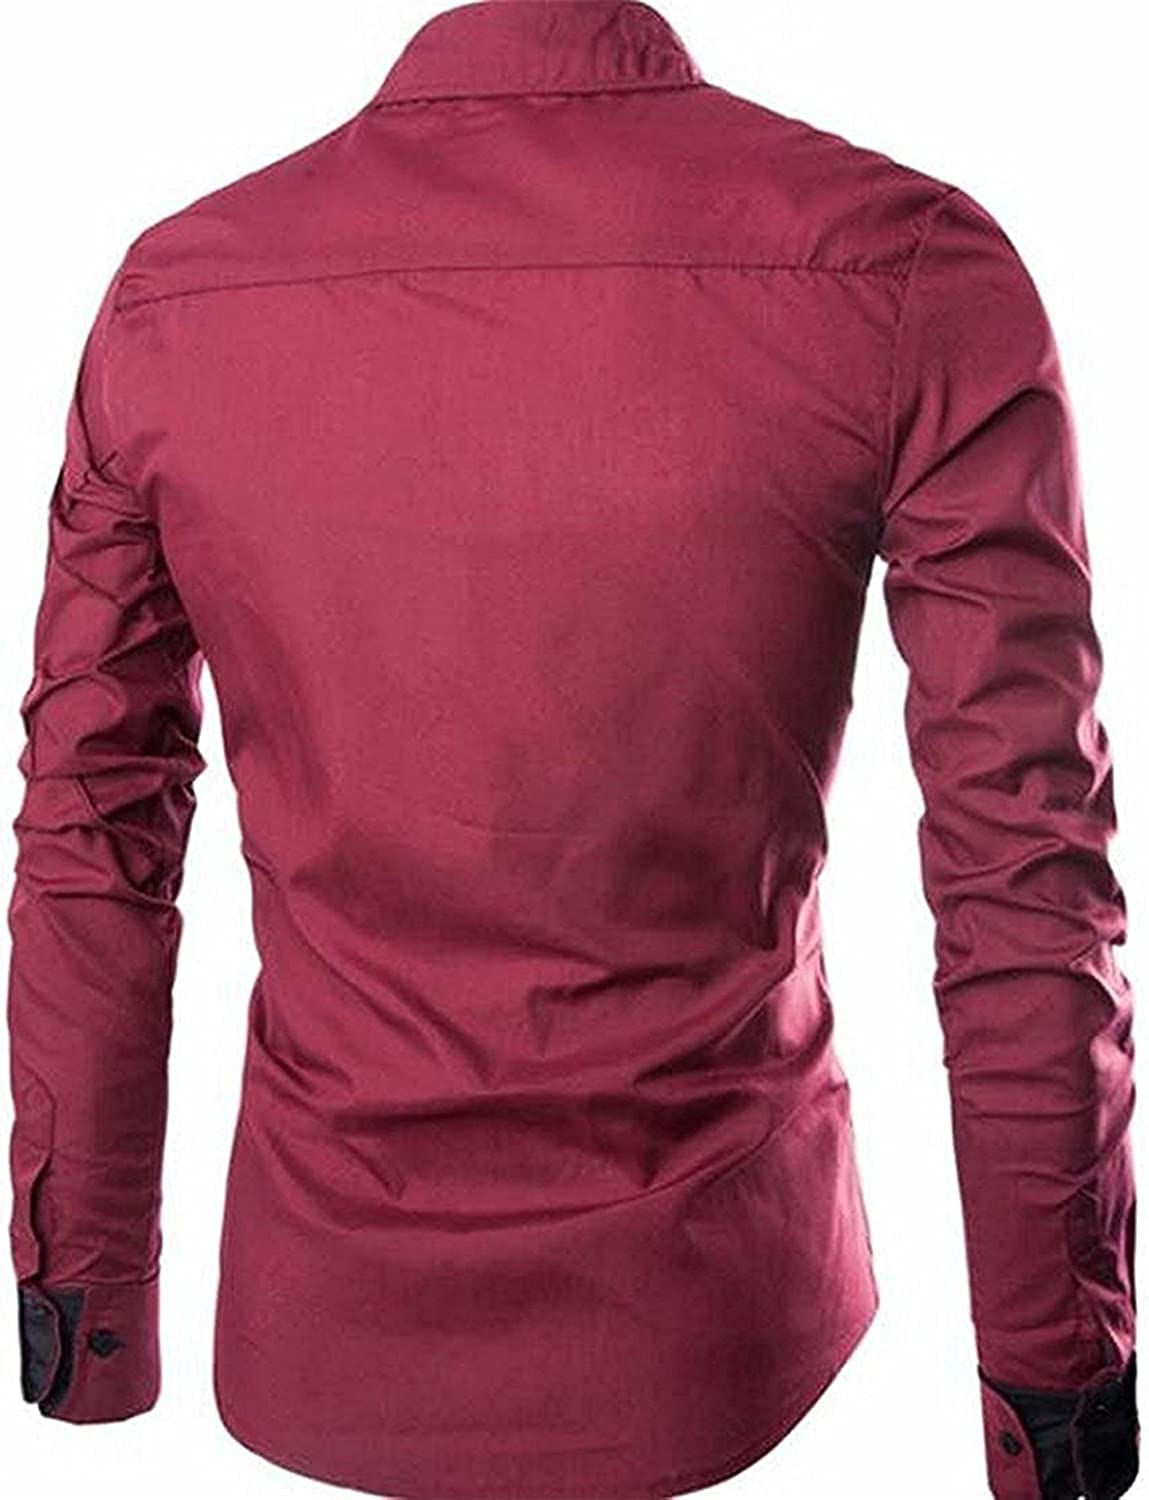 Rising ON Mens Lapel Button Collision Color Formal Slim Comfort Long Sleeve